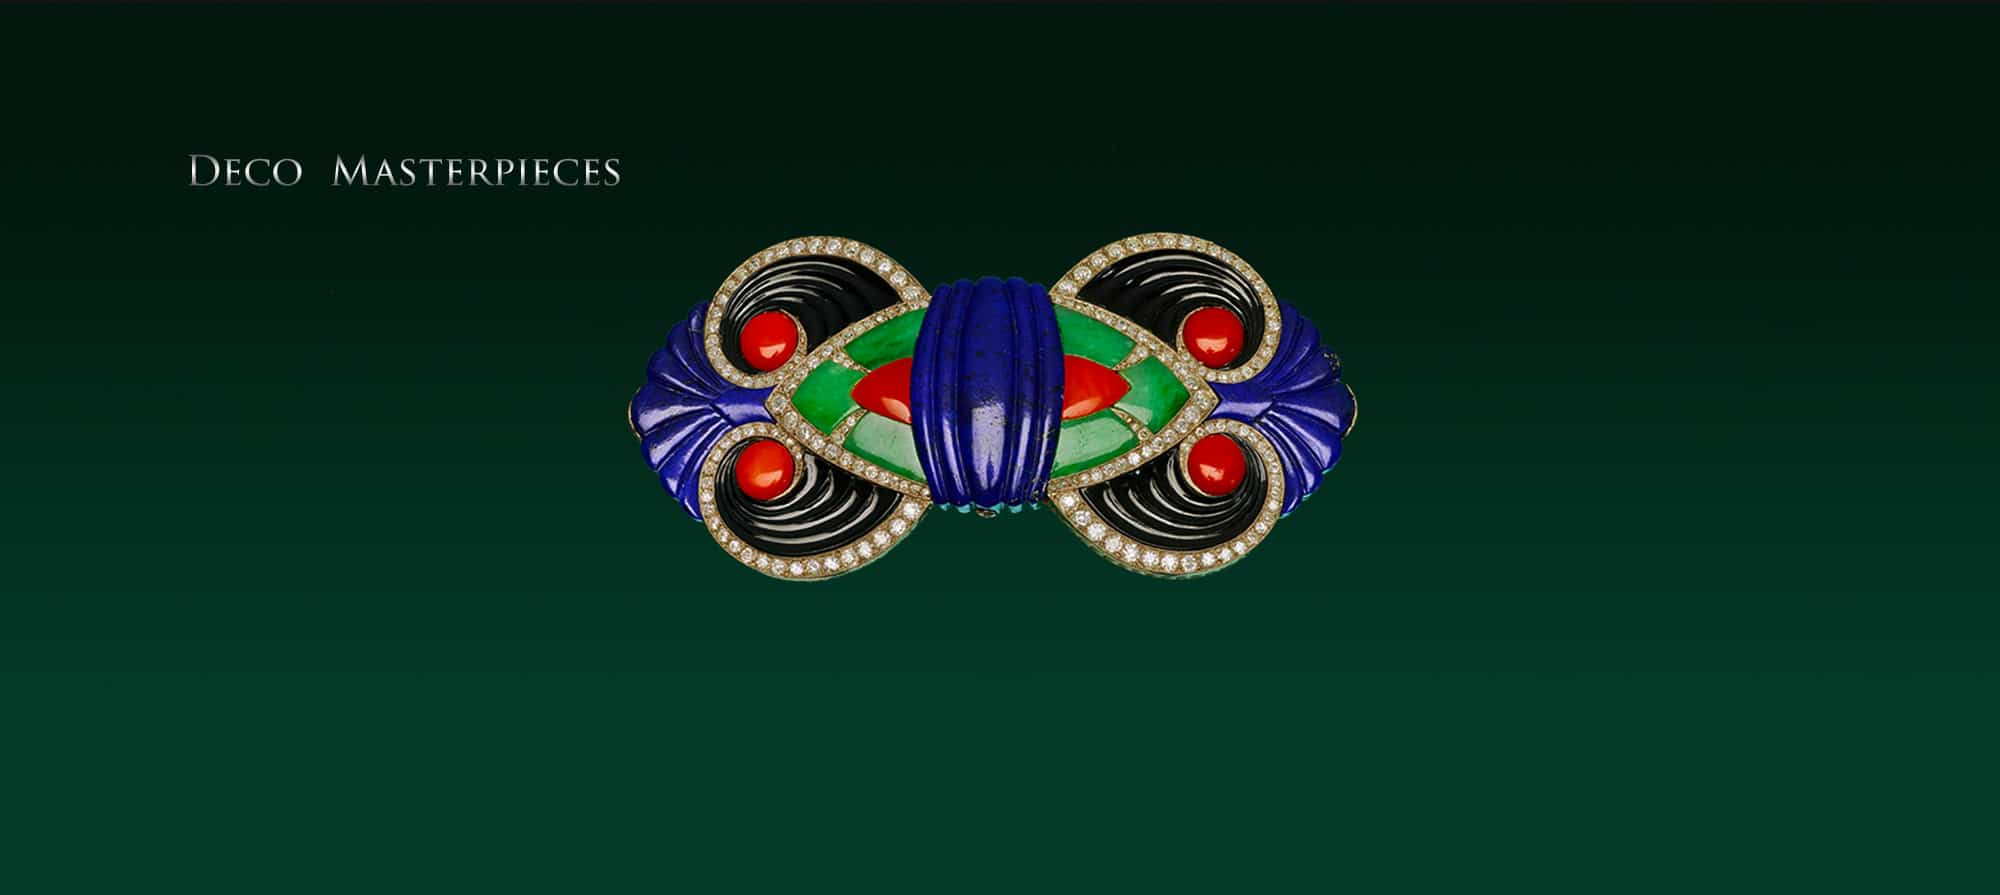 Art Deco Brooch by Boucheron, designed by Lucien Hertz for the Exhibition des Arts Decoratifs, Paris 1925